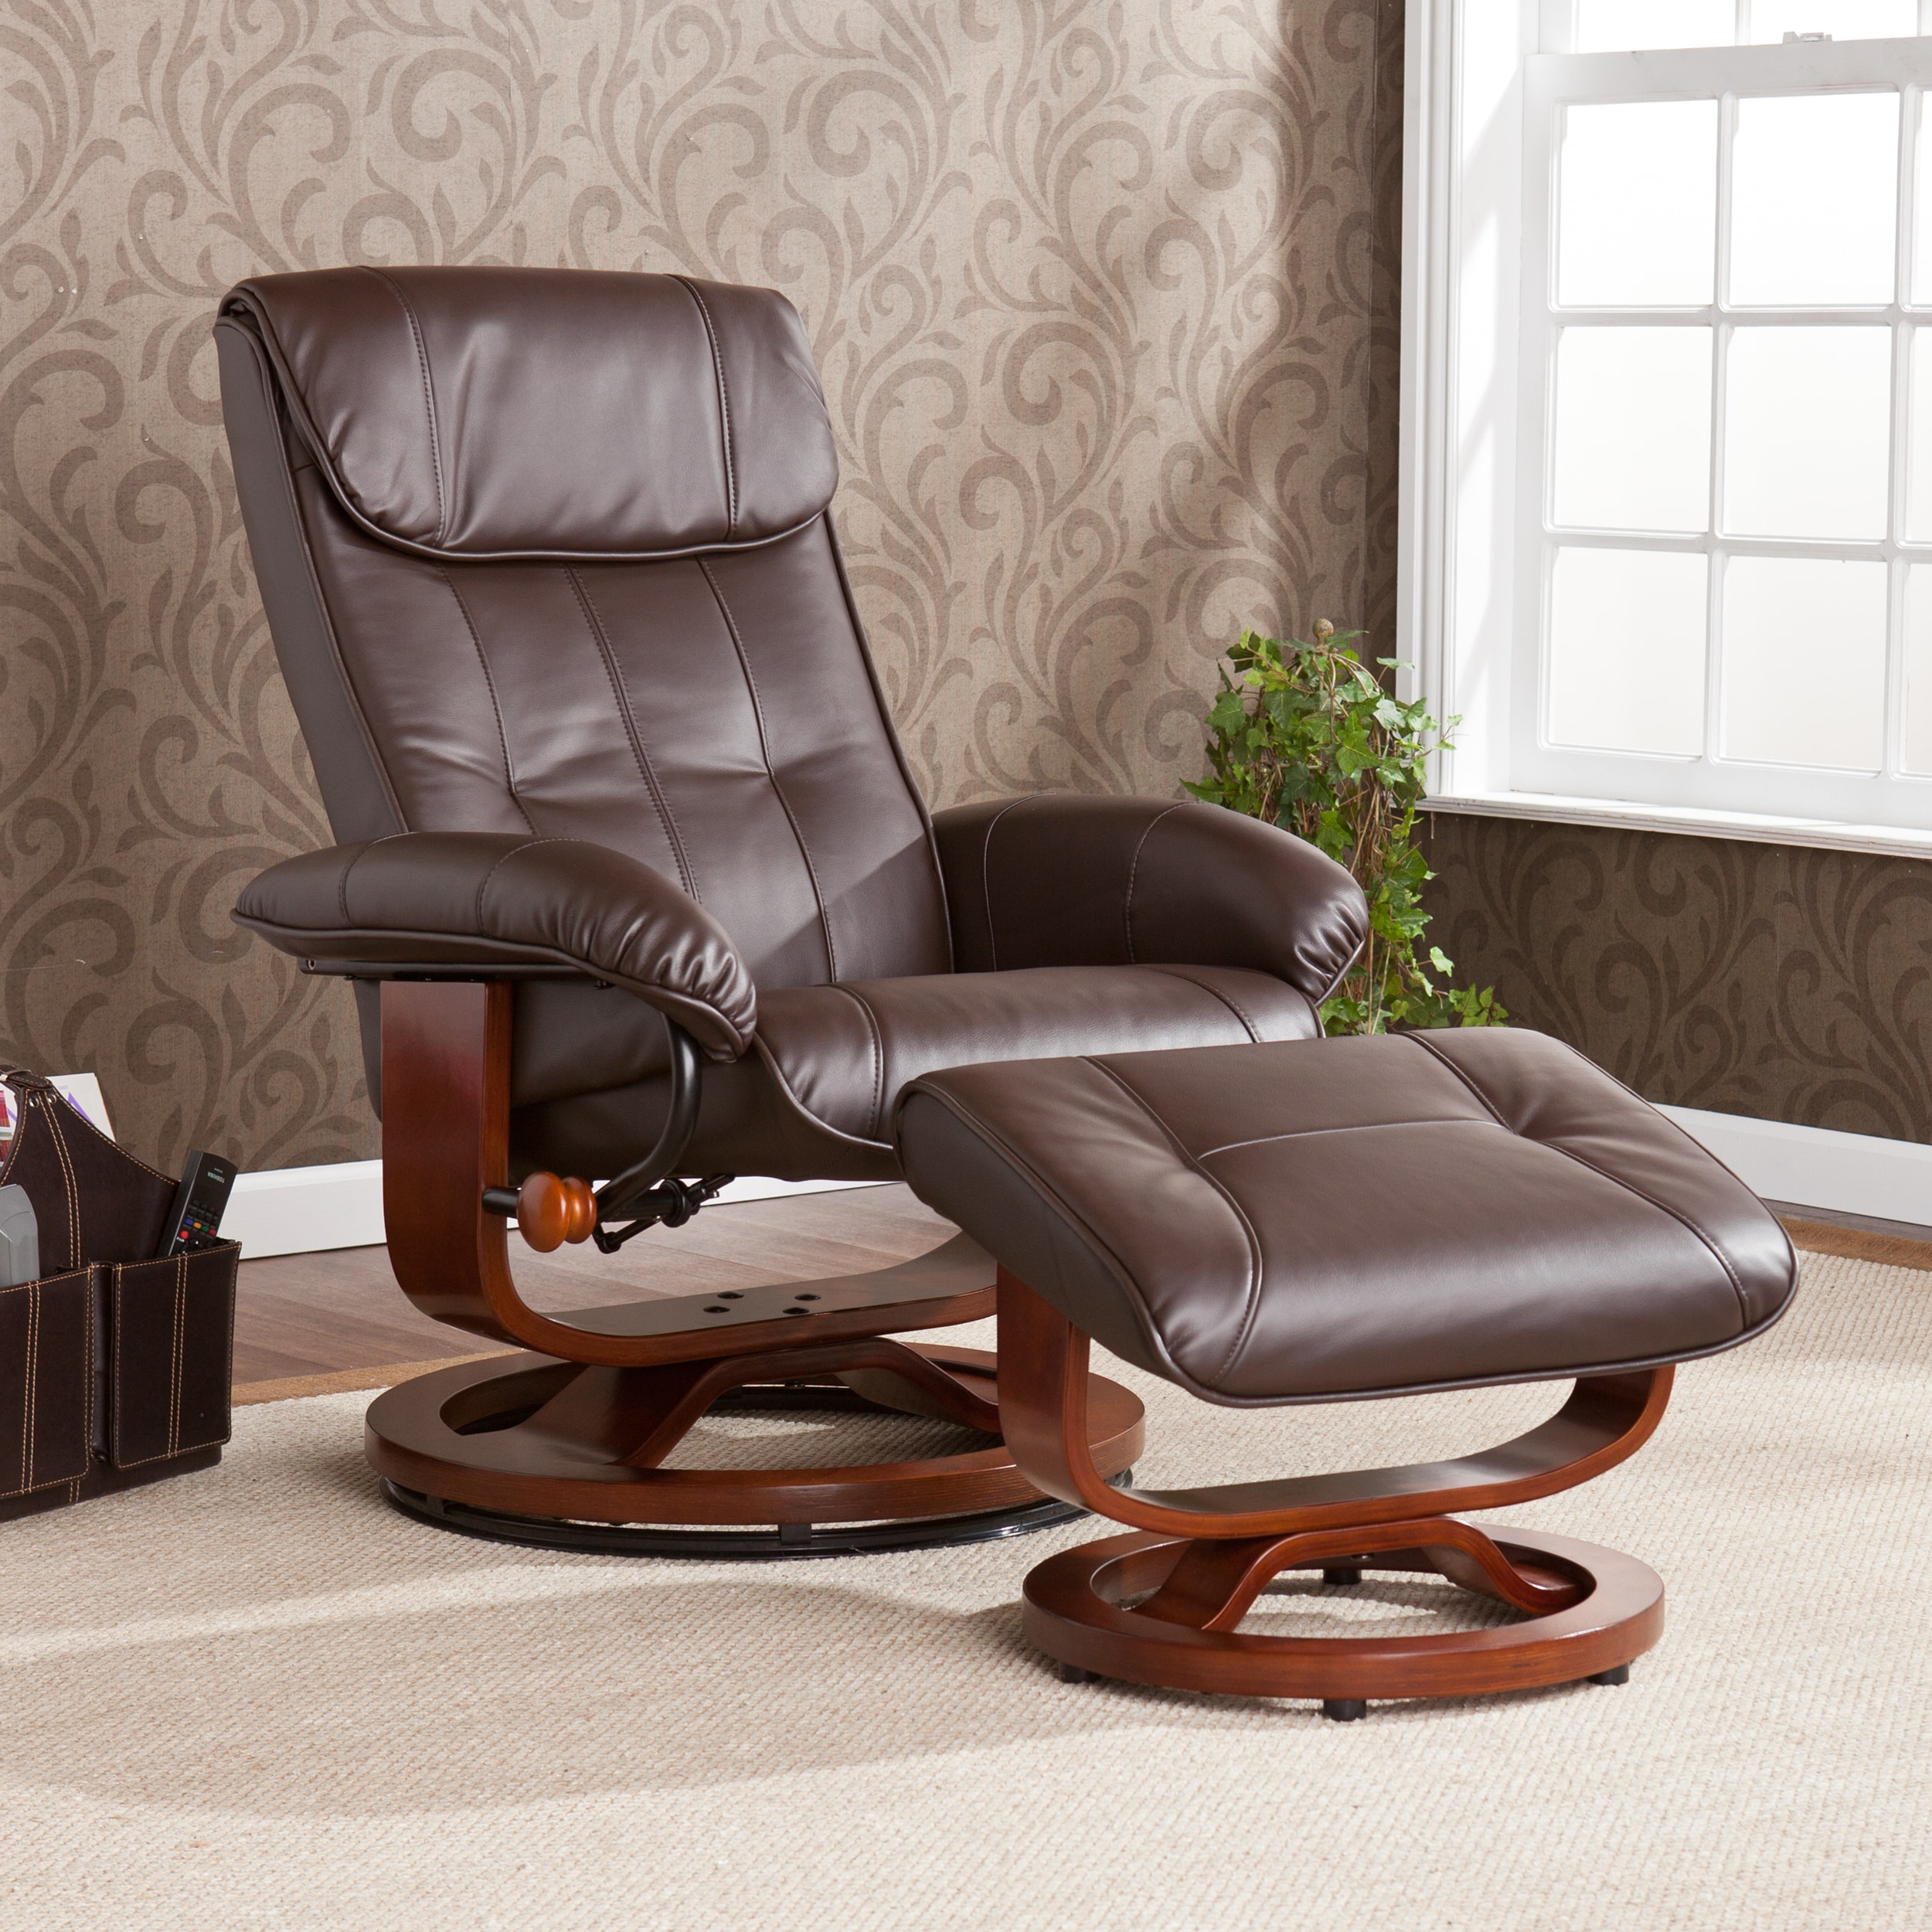 Upton Home Viridian Cafe Brown Recliner/ Ottoman Set at Sears.com